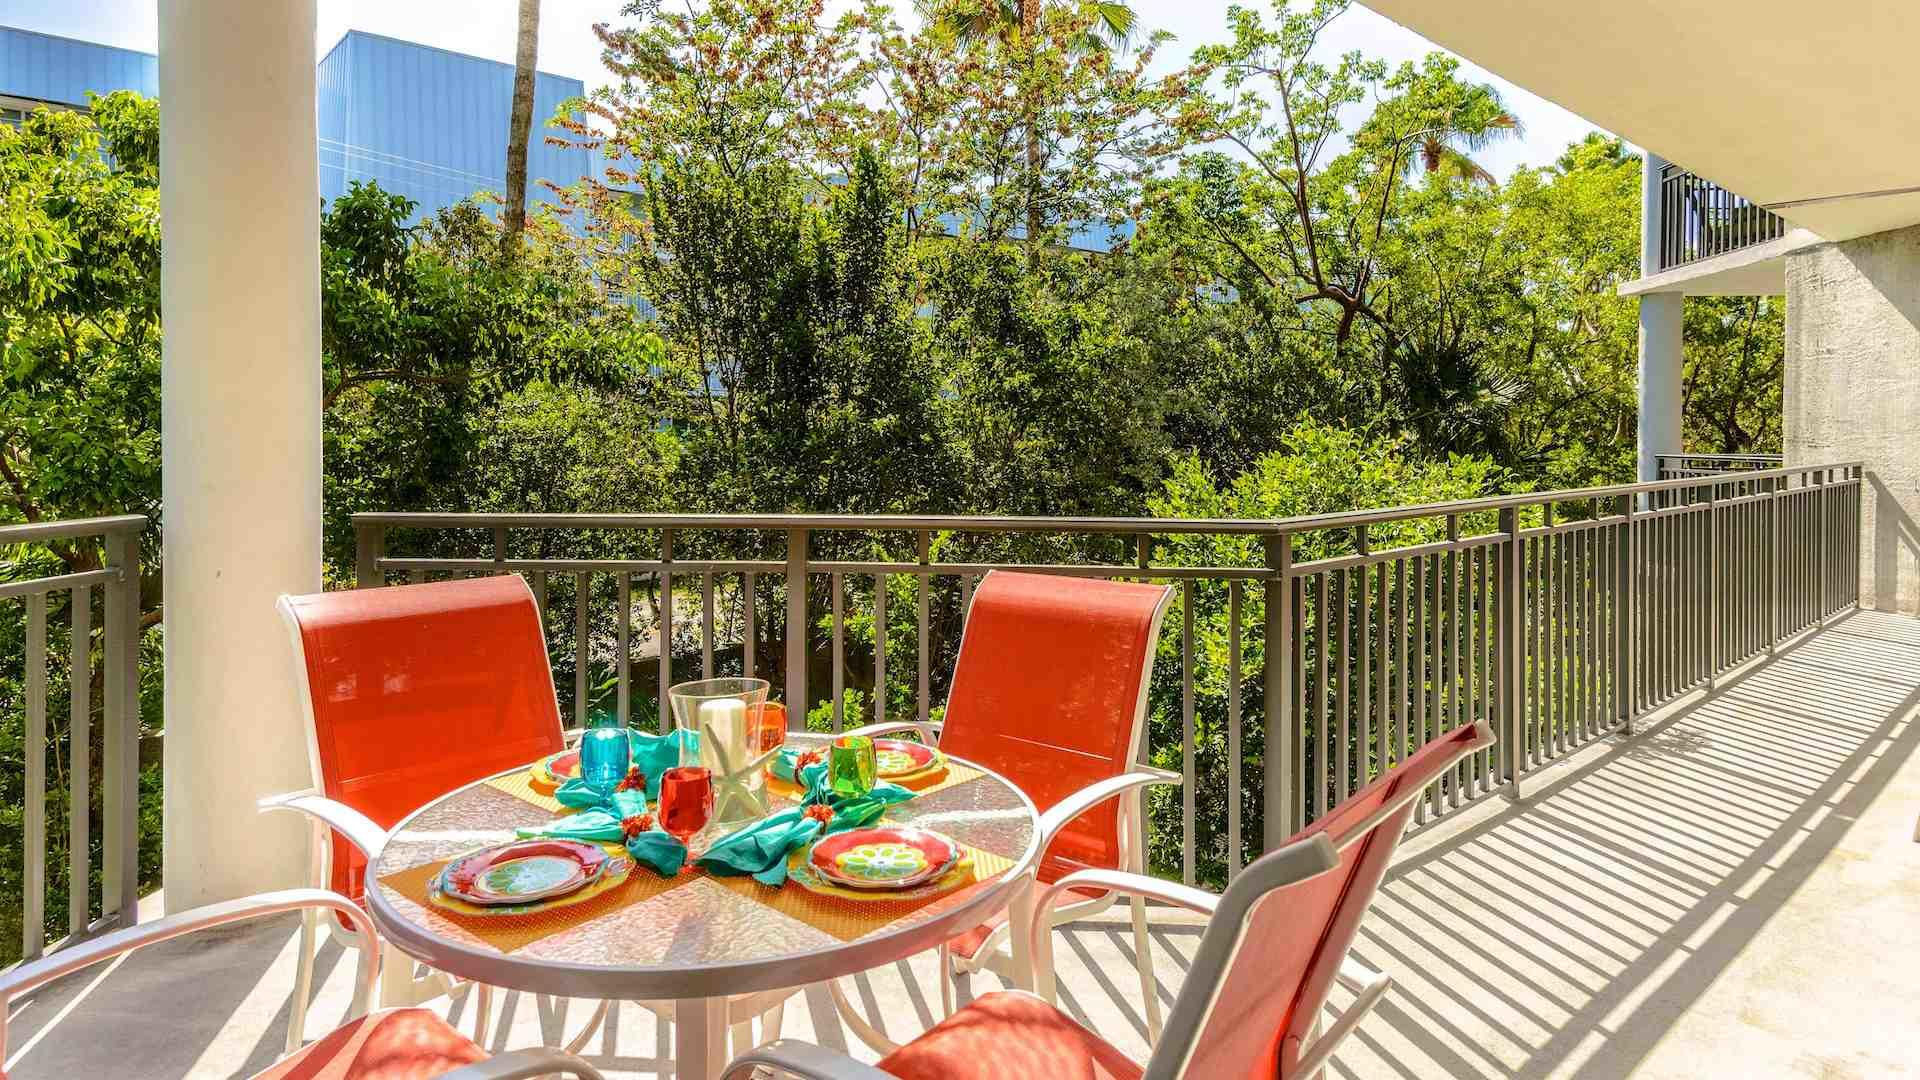 Your private balcony in the treetops for a meal with a delightful breeze...